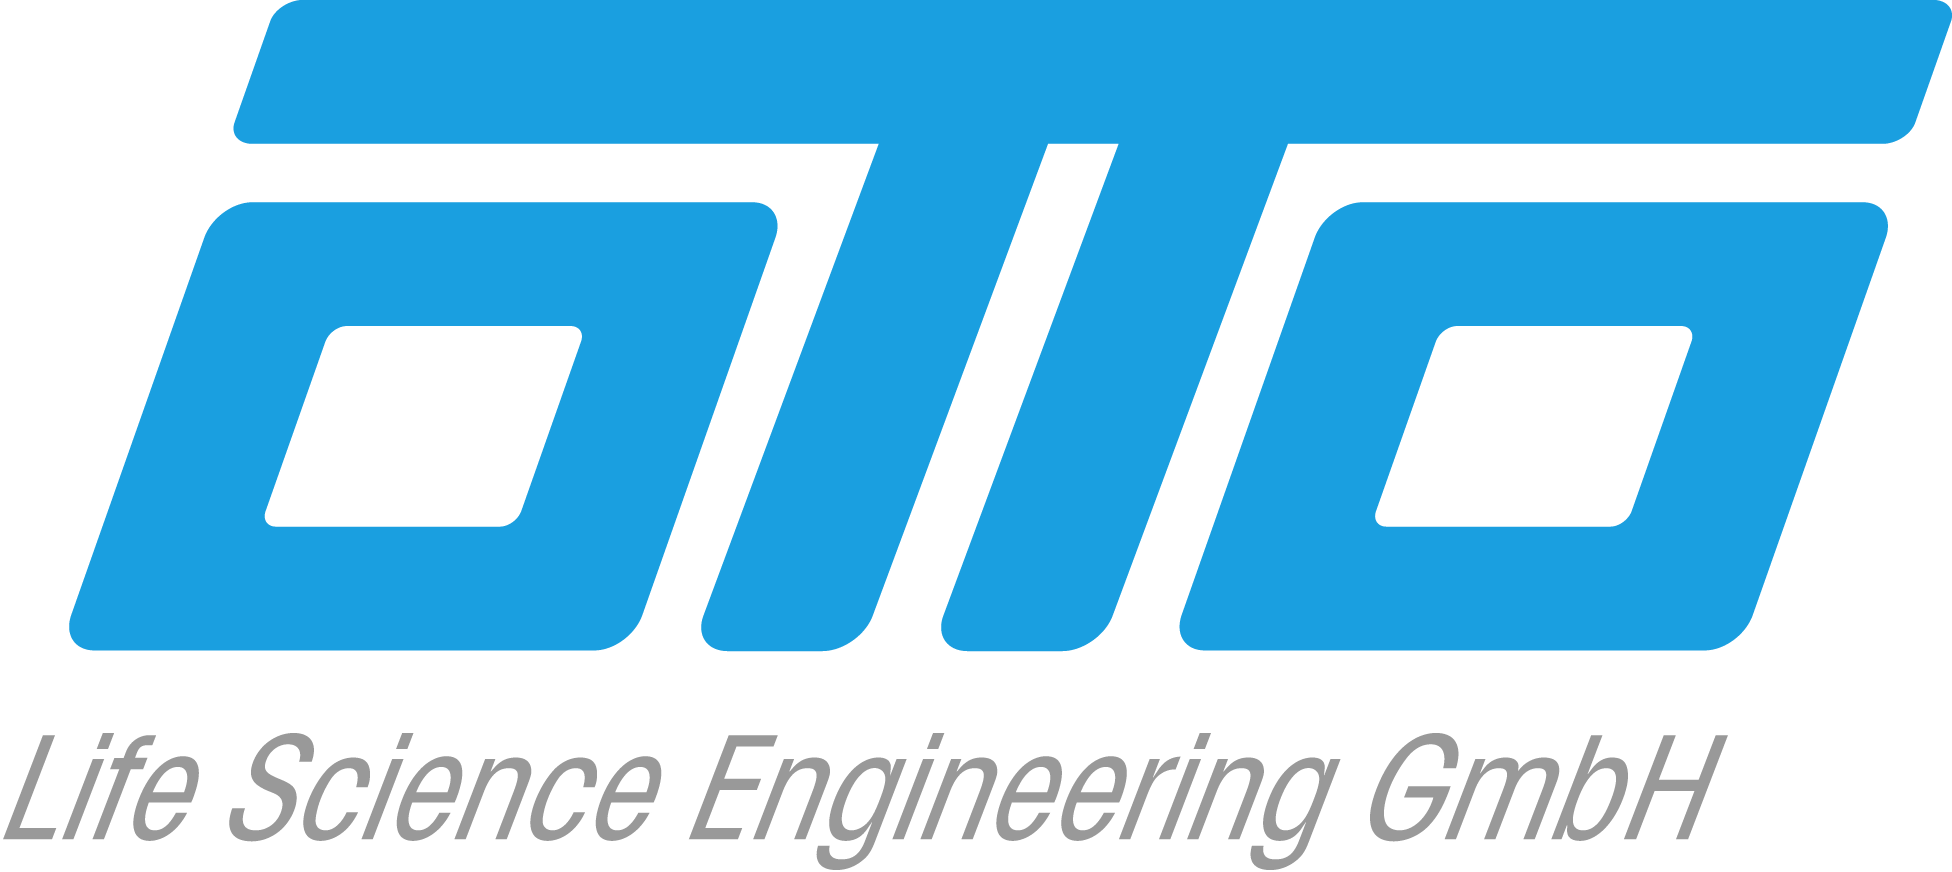 OTTO Life Science Engineering GmbH